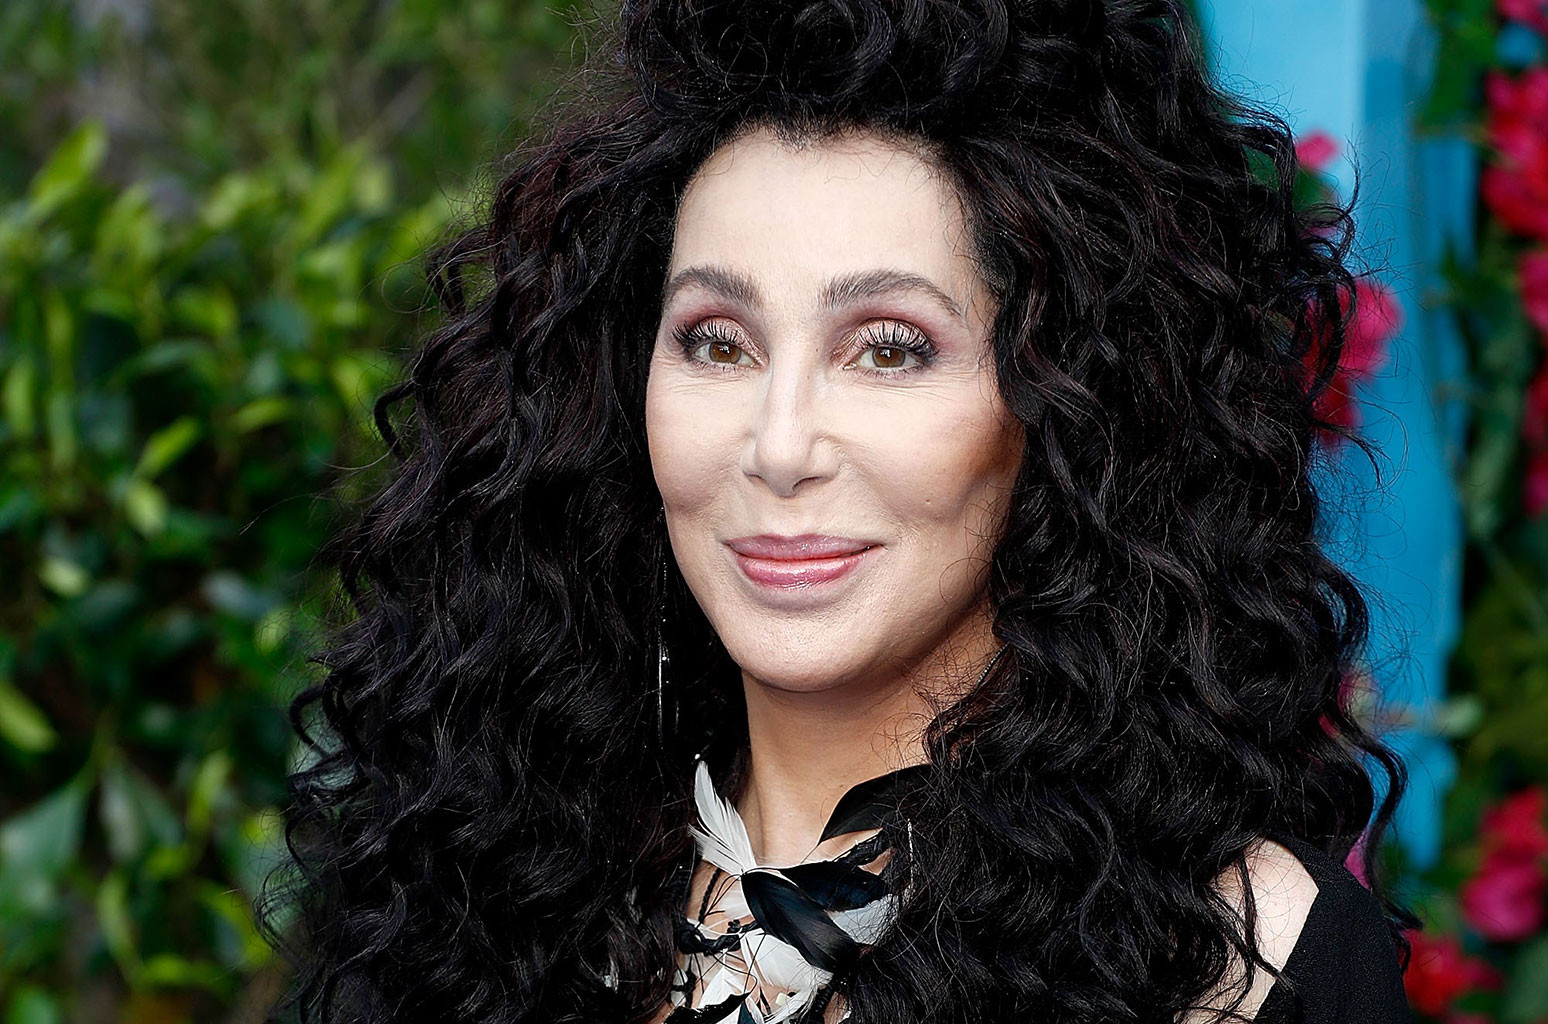 Cher Wants To Save The Post Office By Volunteering But No One Will Help Her Billboard